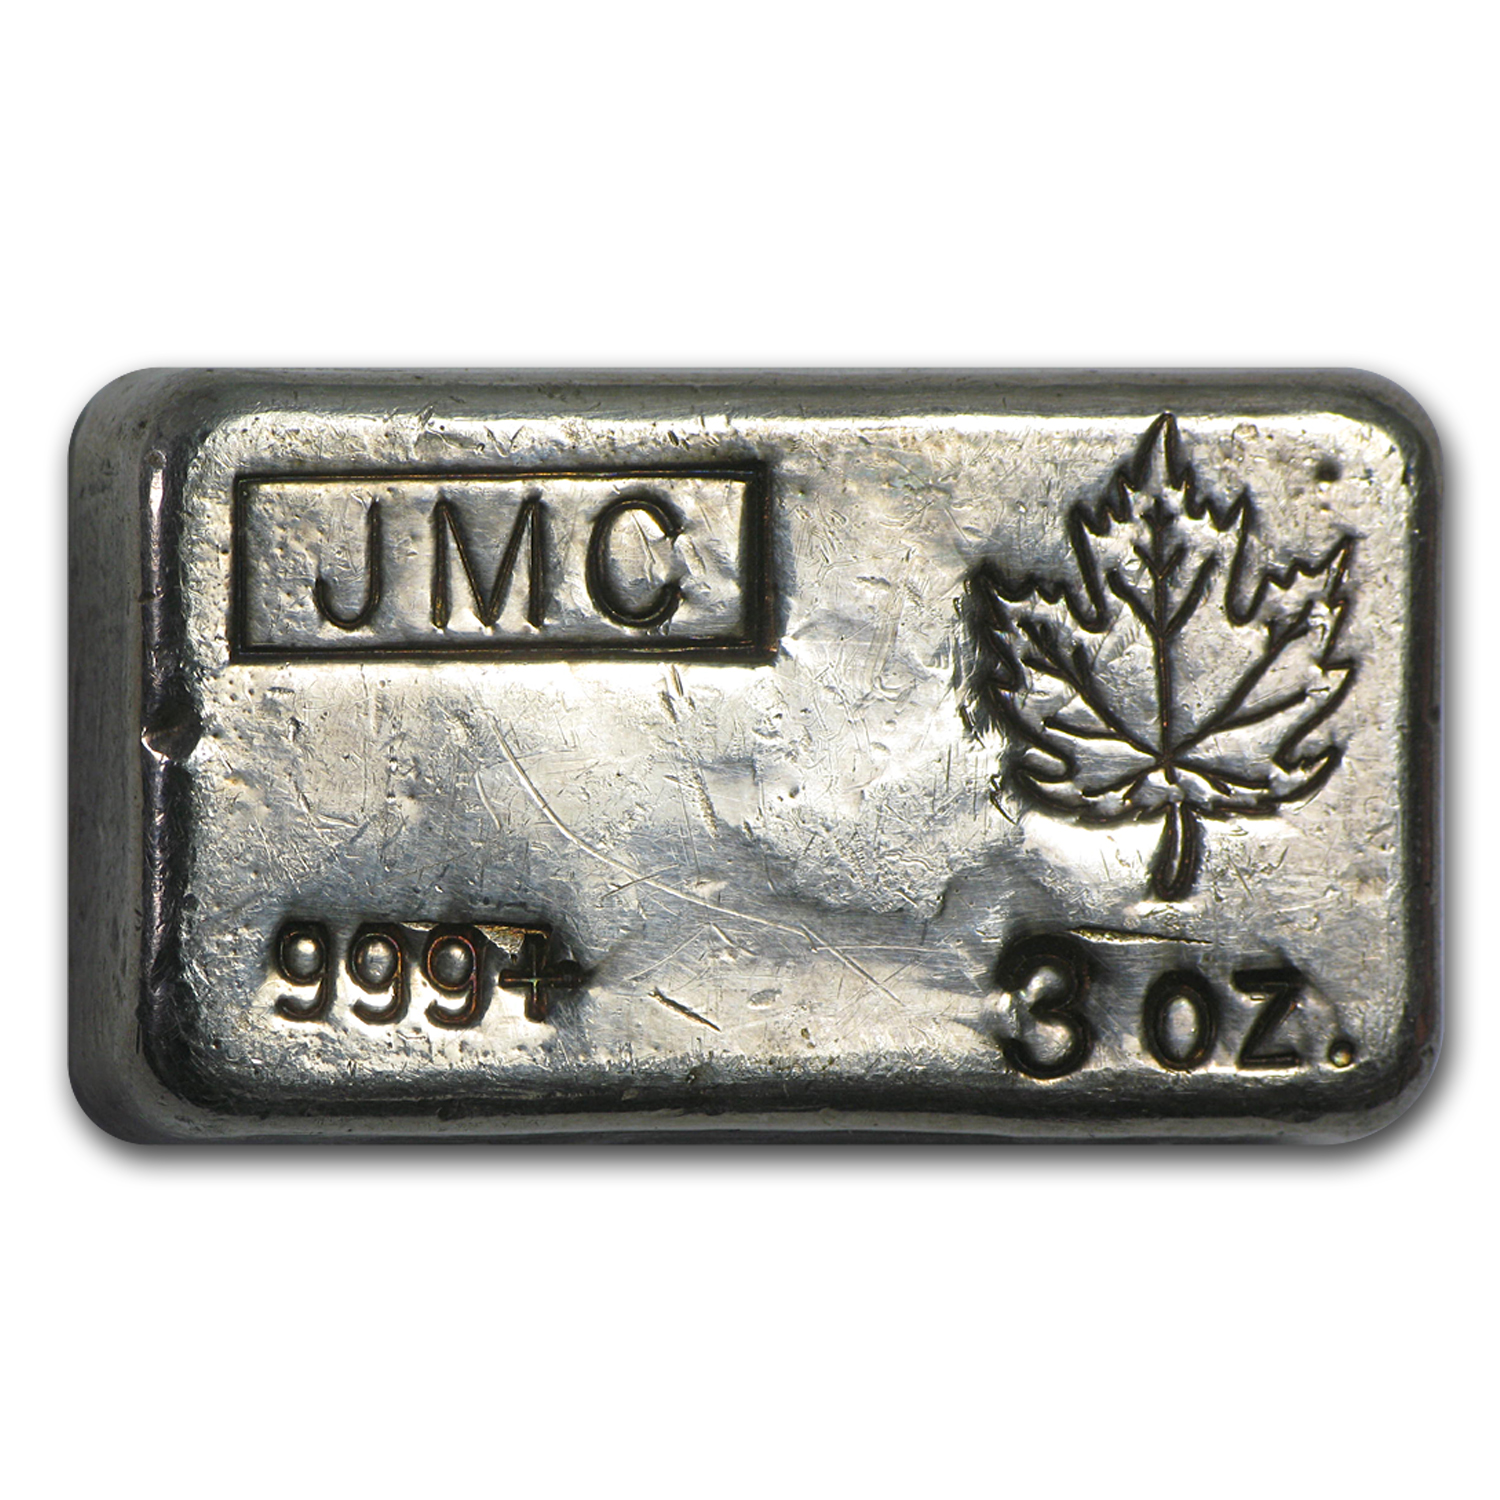 3 oz Silver Bar - Johnson Matthey (Poured/Canada)